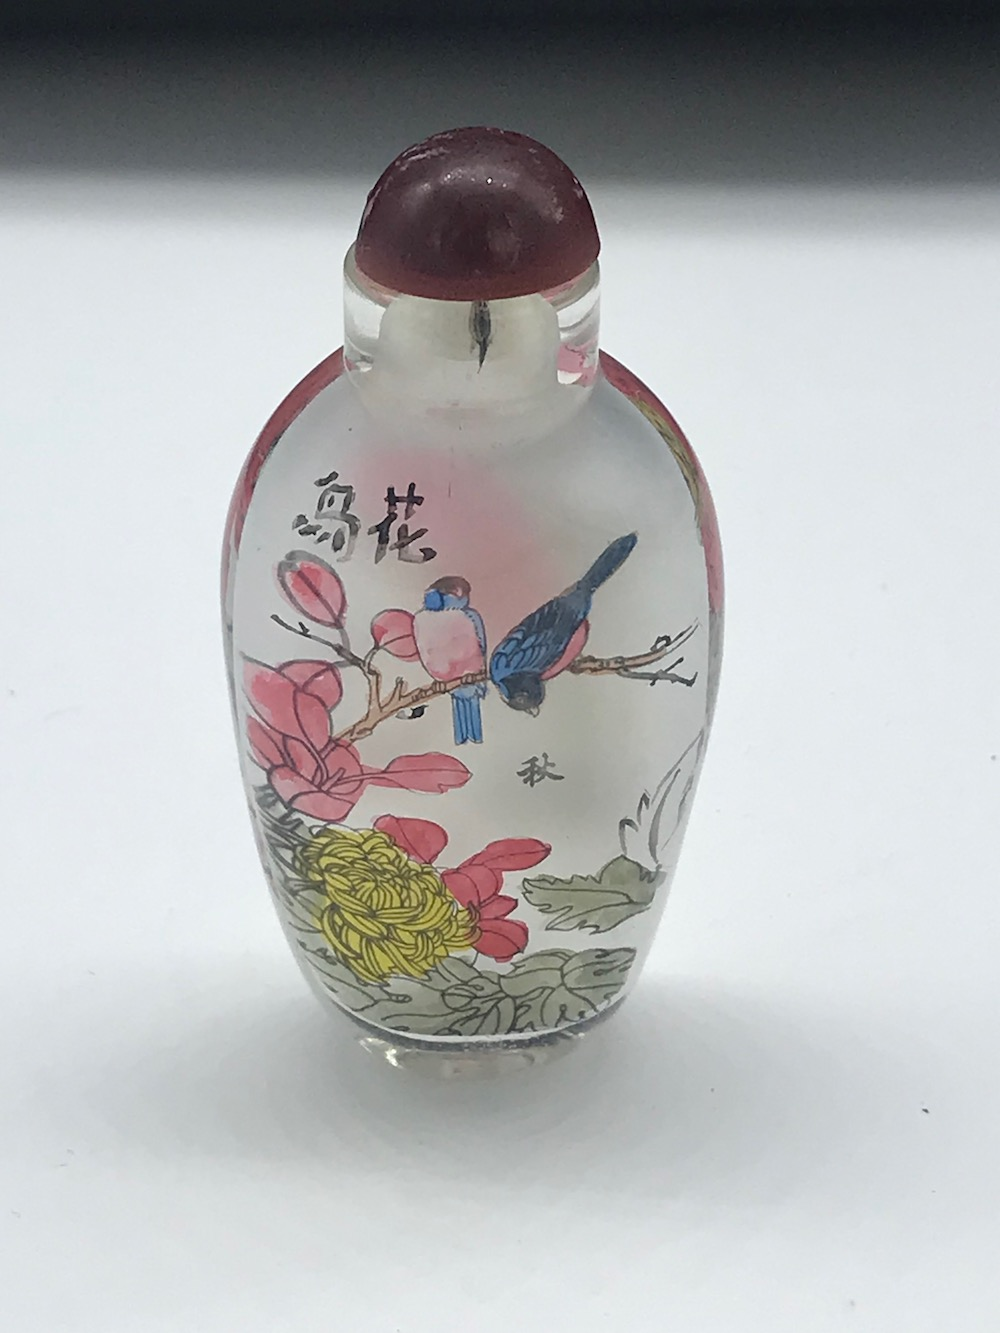 Sold Price Chinese Snuff Bottle Of Blue Jay Birds Hand Painted 3 X 1 3 4 May 6 0119 12 00 Pm Pdt